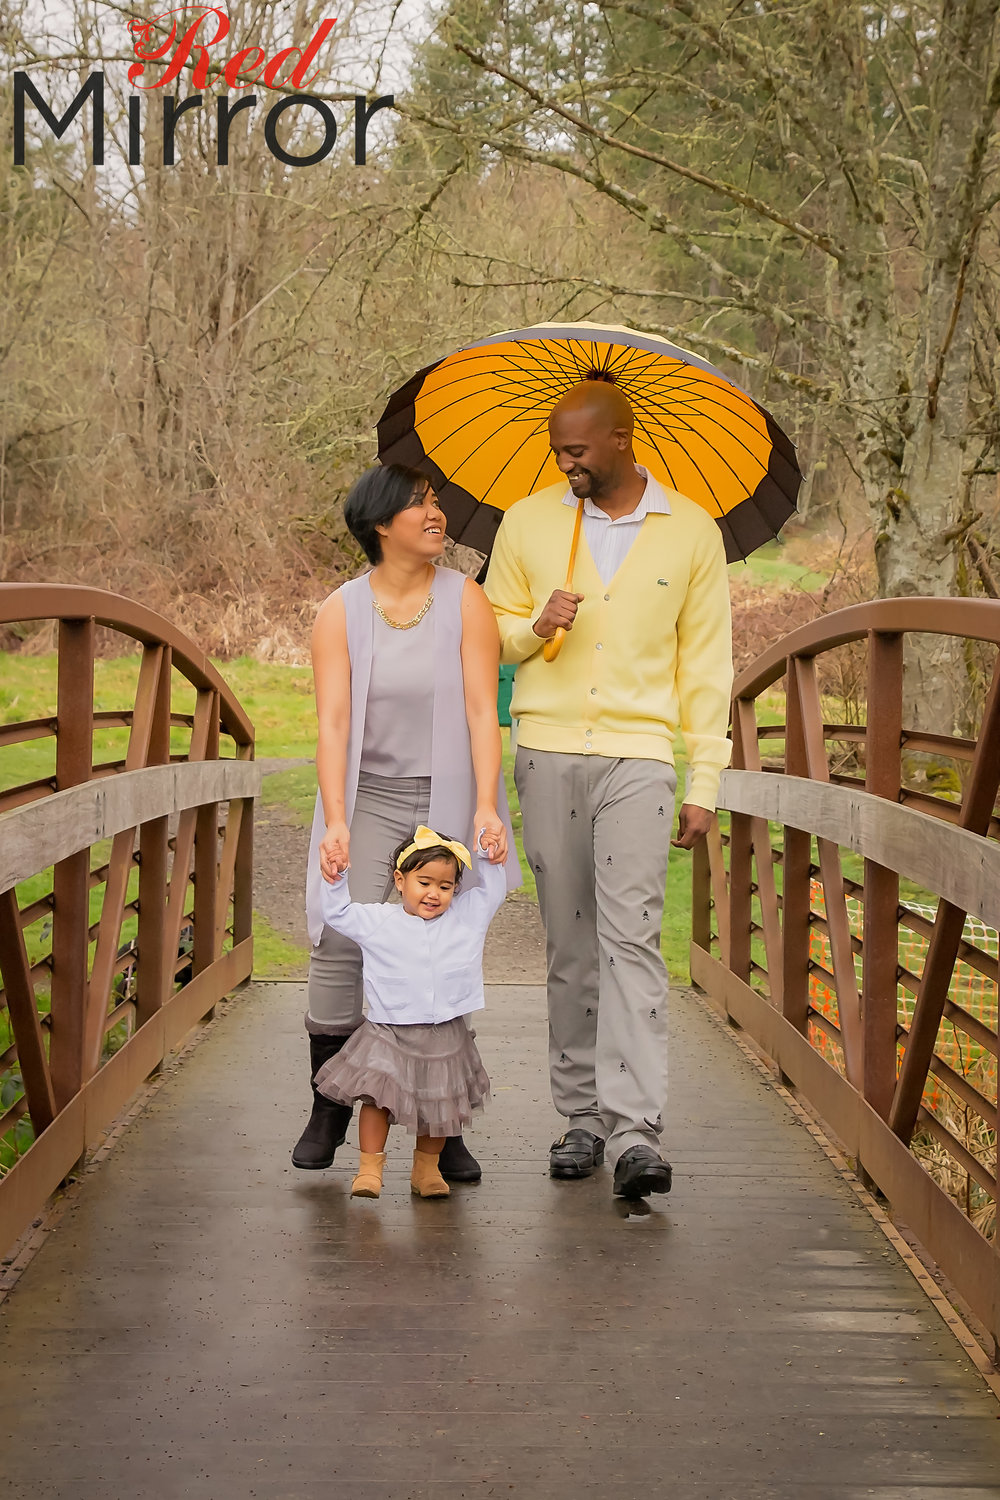 Mother and Father walking along a bridge with a little girl in front of them. The father is carrying a yellow umbrella